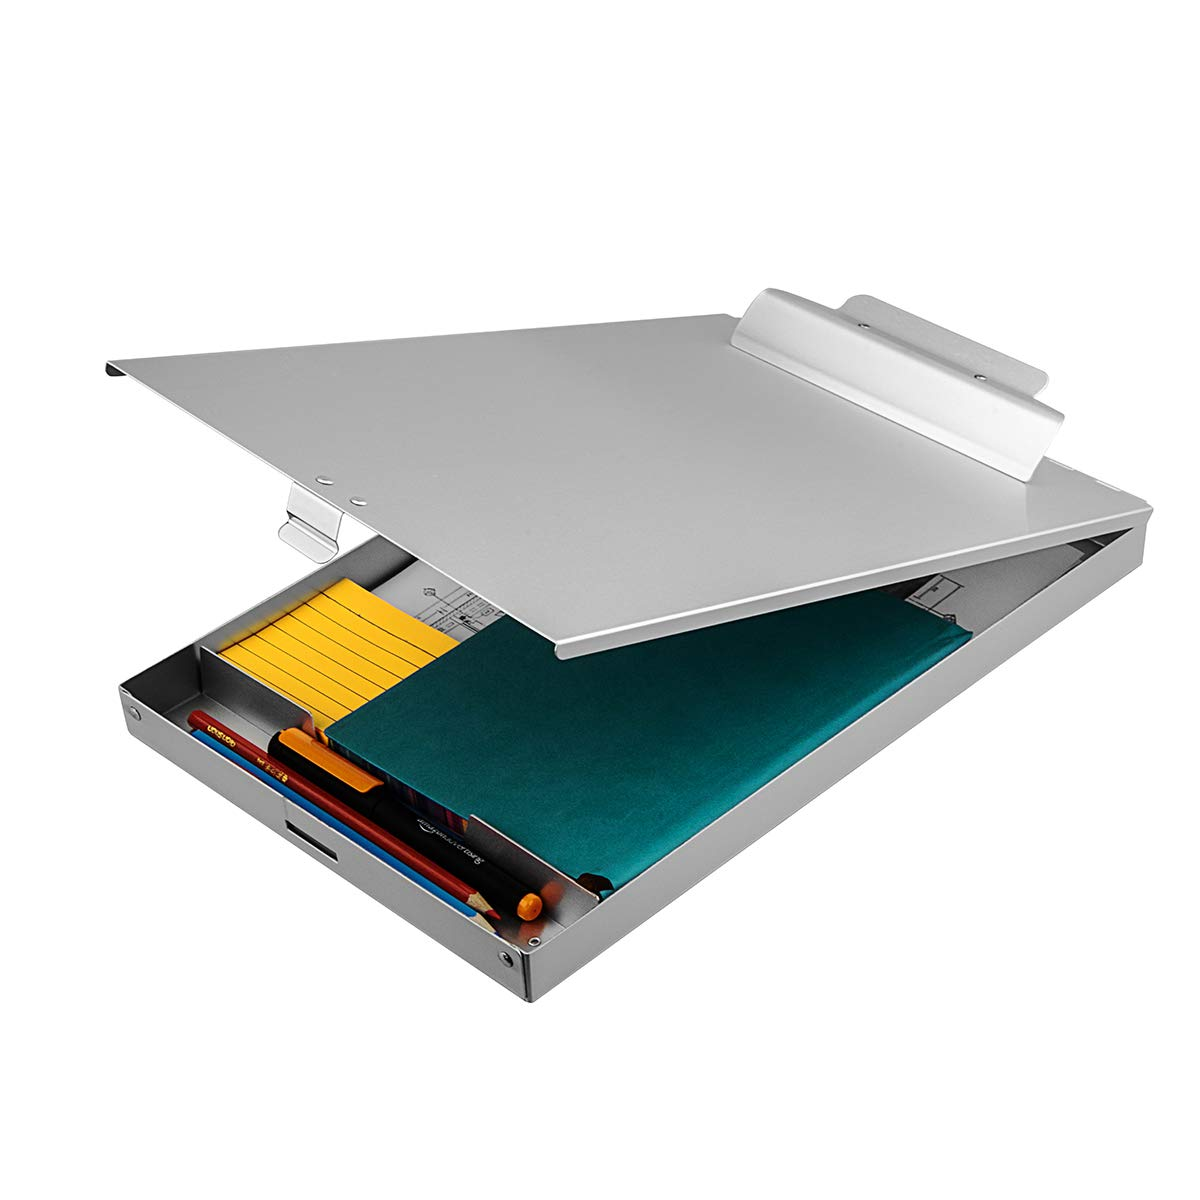 ZCZN Recycled Aluminum Storage Clipboard, Clipboard Box, Form Holder, Suitable for School, Office, Jobsite or Medical Staff,Silver by ZCZN